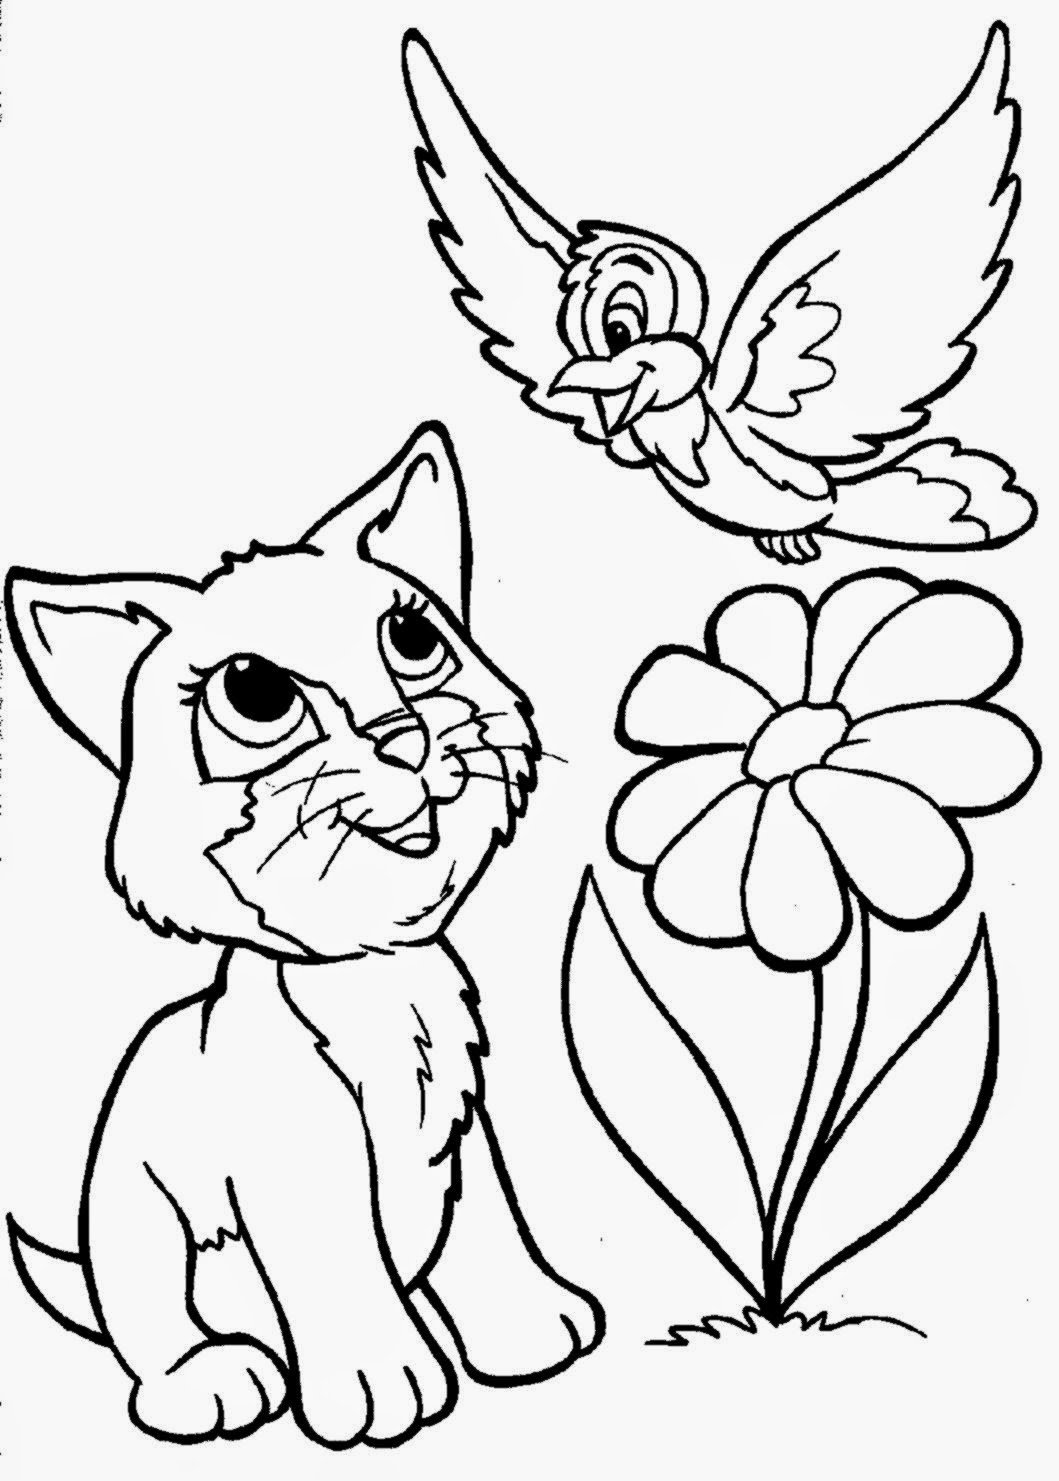 printable kitty cat coloring pages | February 2015 | Free Coloring Sheet